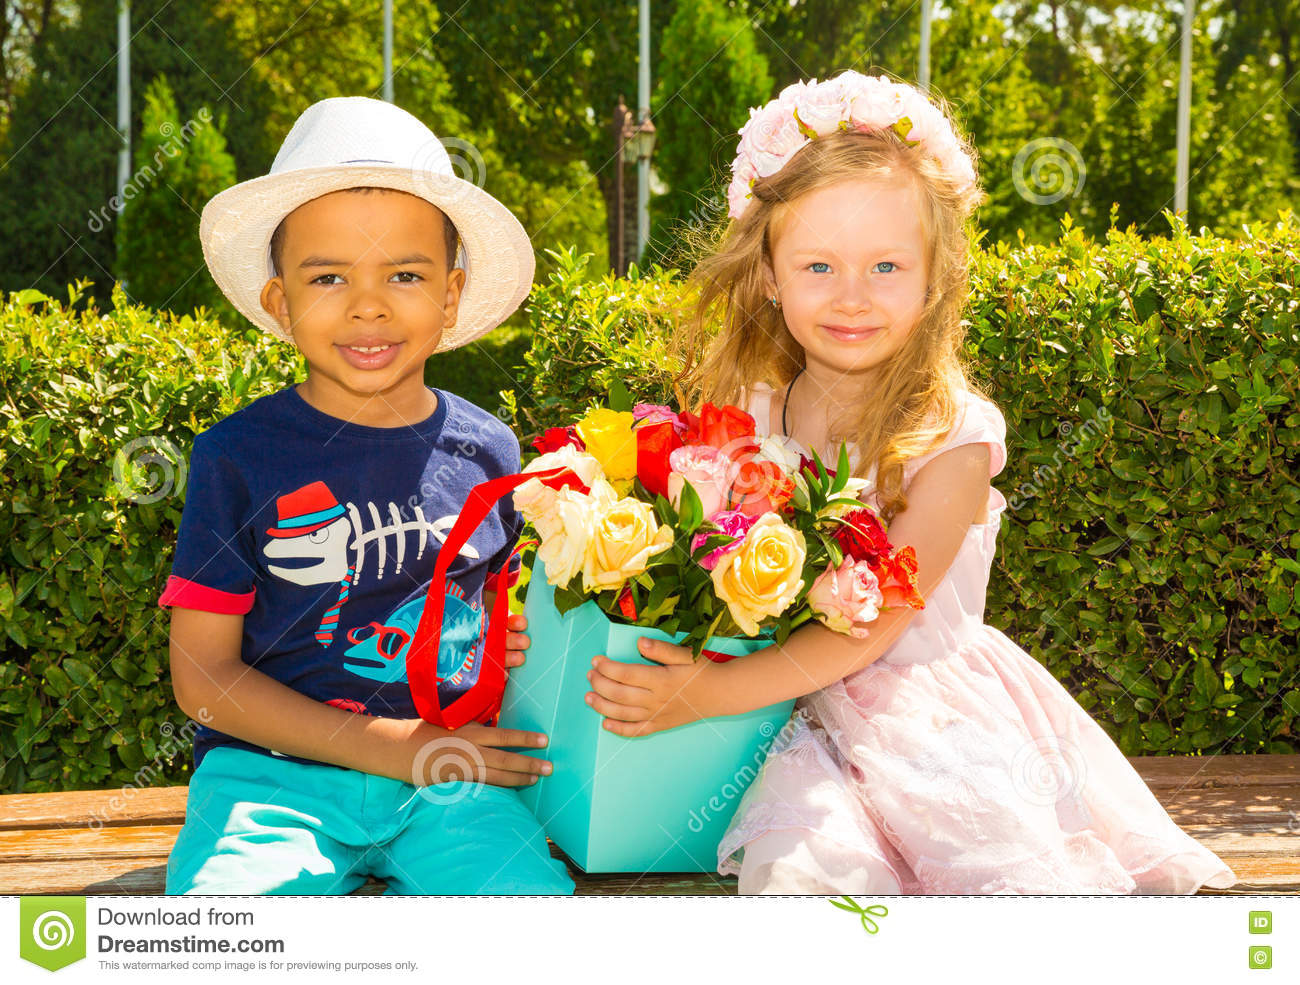 Black African American Boy Kid Gives Flowers To Girl Child On Birthday Little Adorable Children In Park